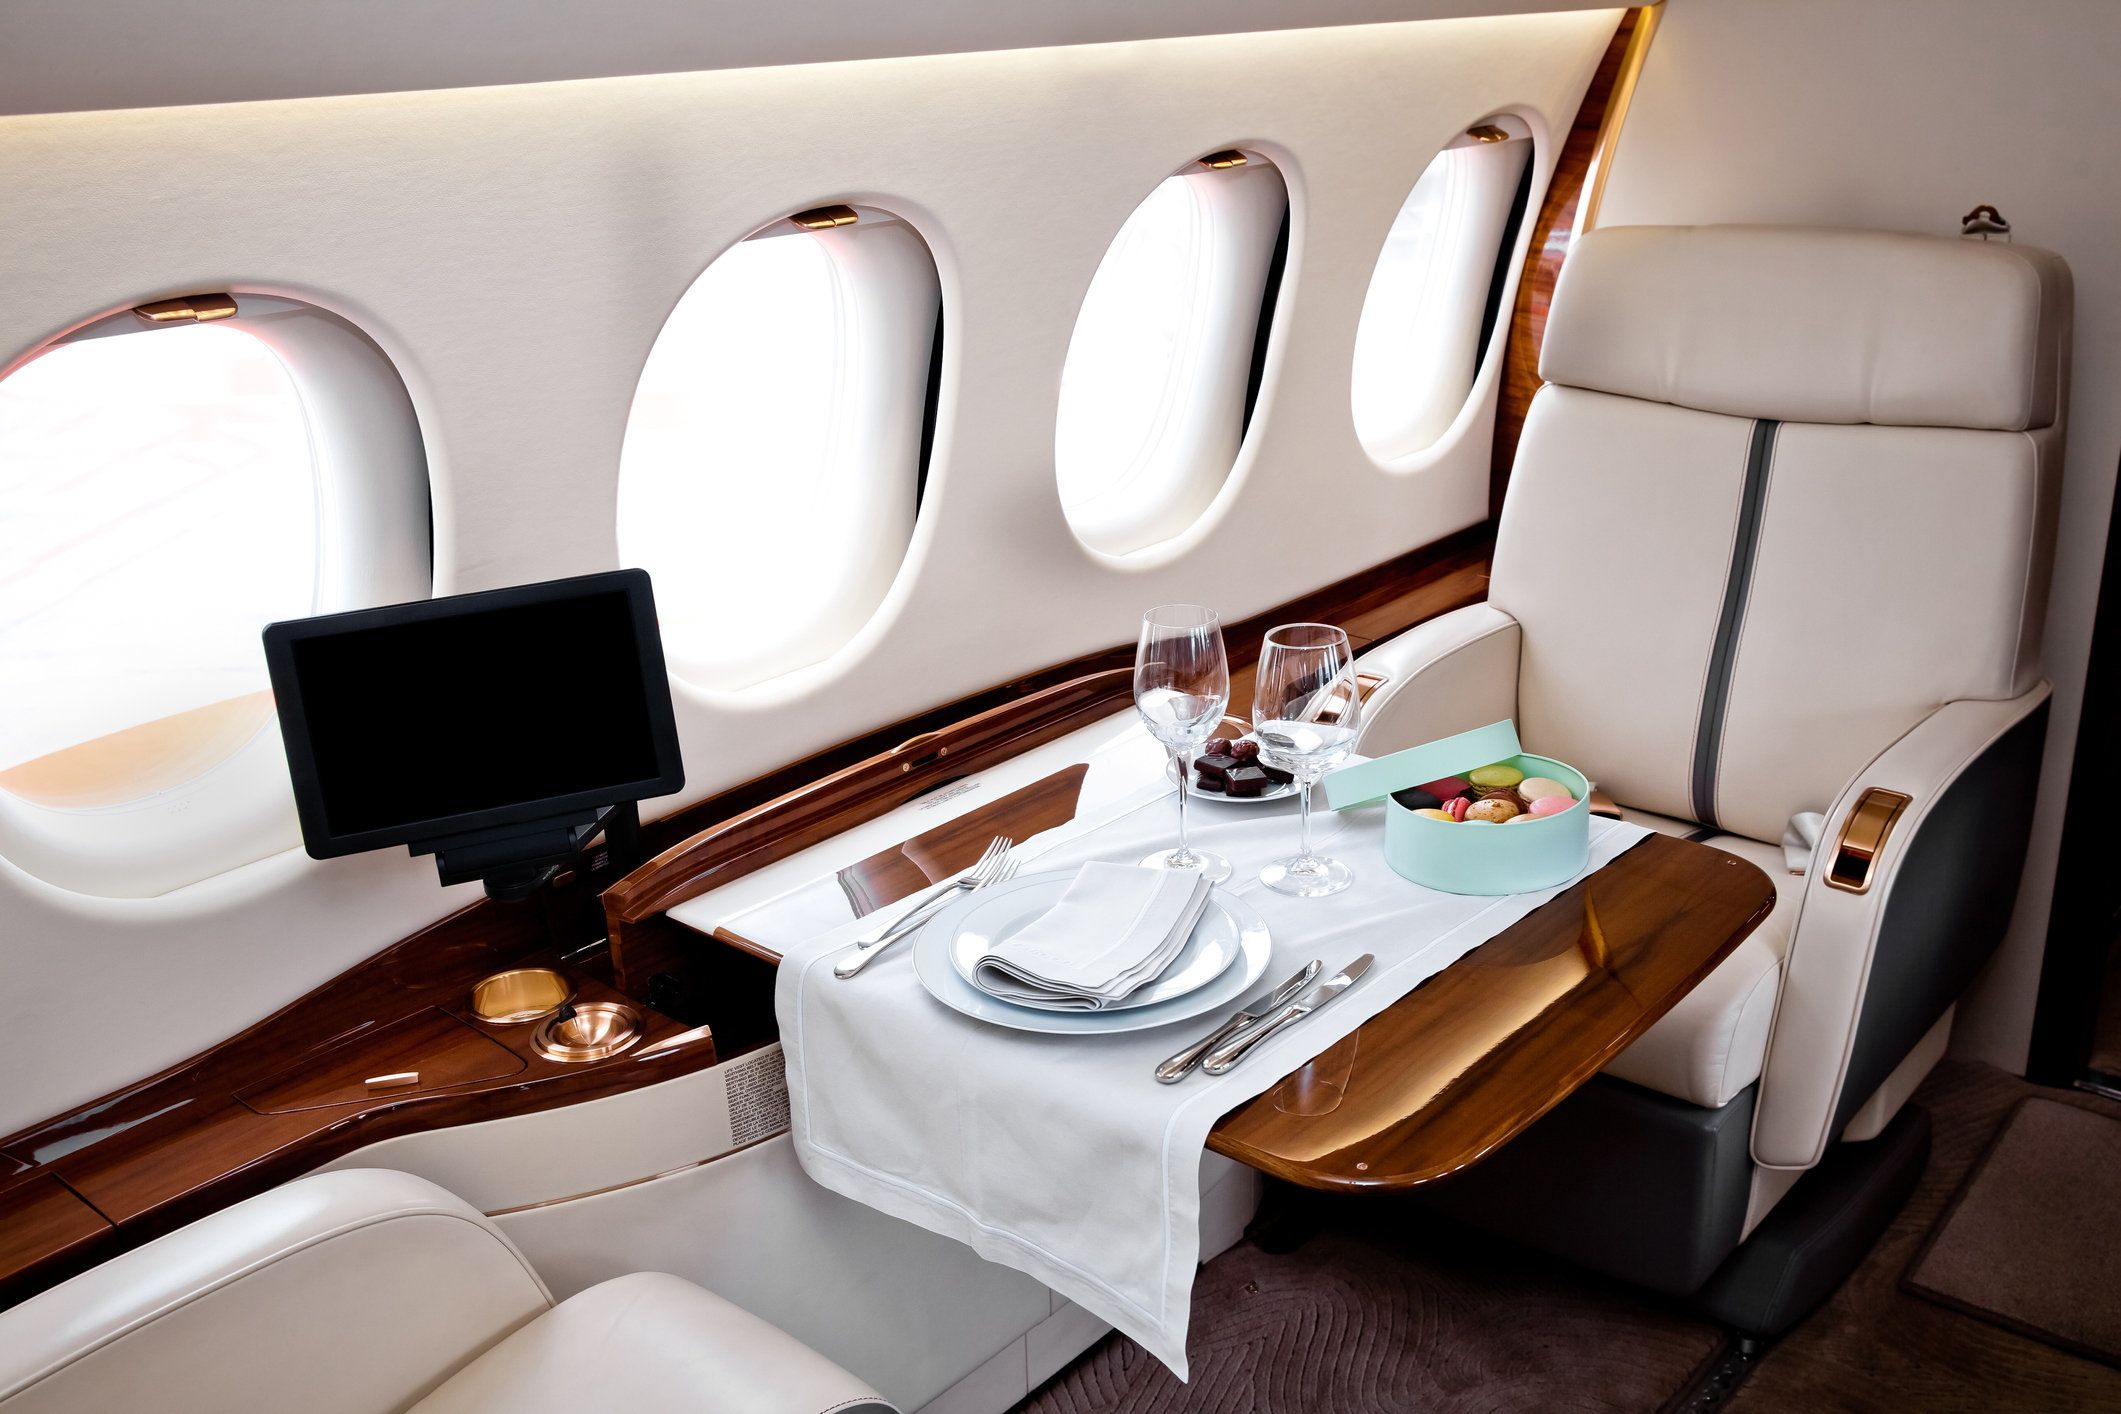 Business Jet airplane interior. First class flight